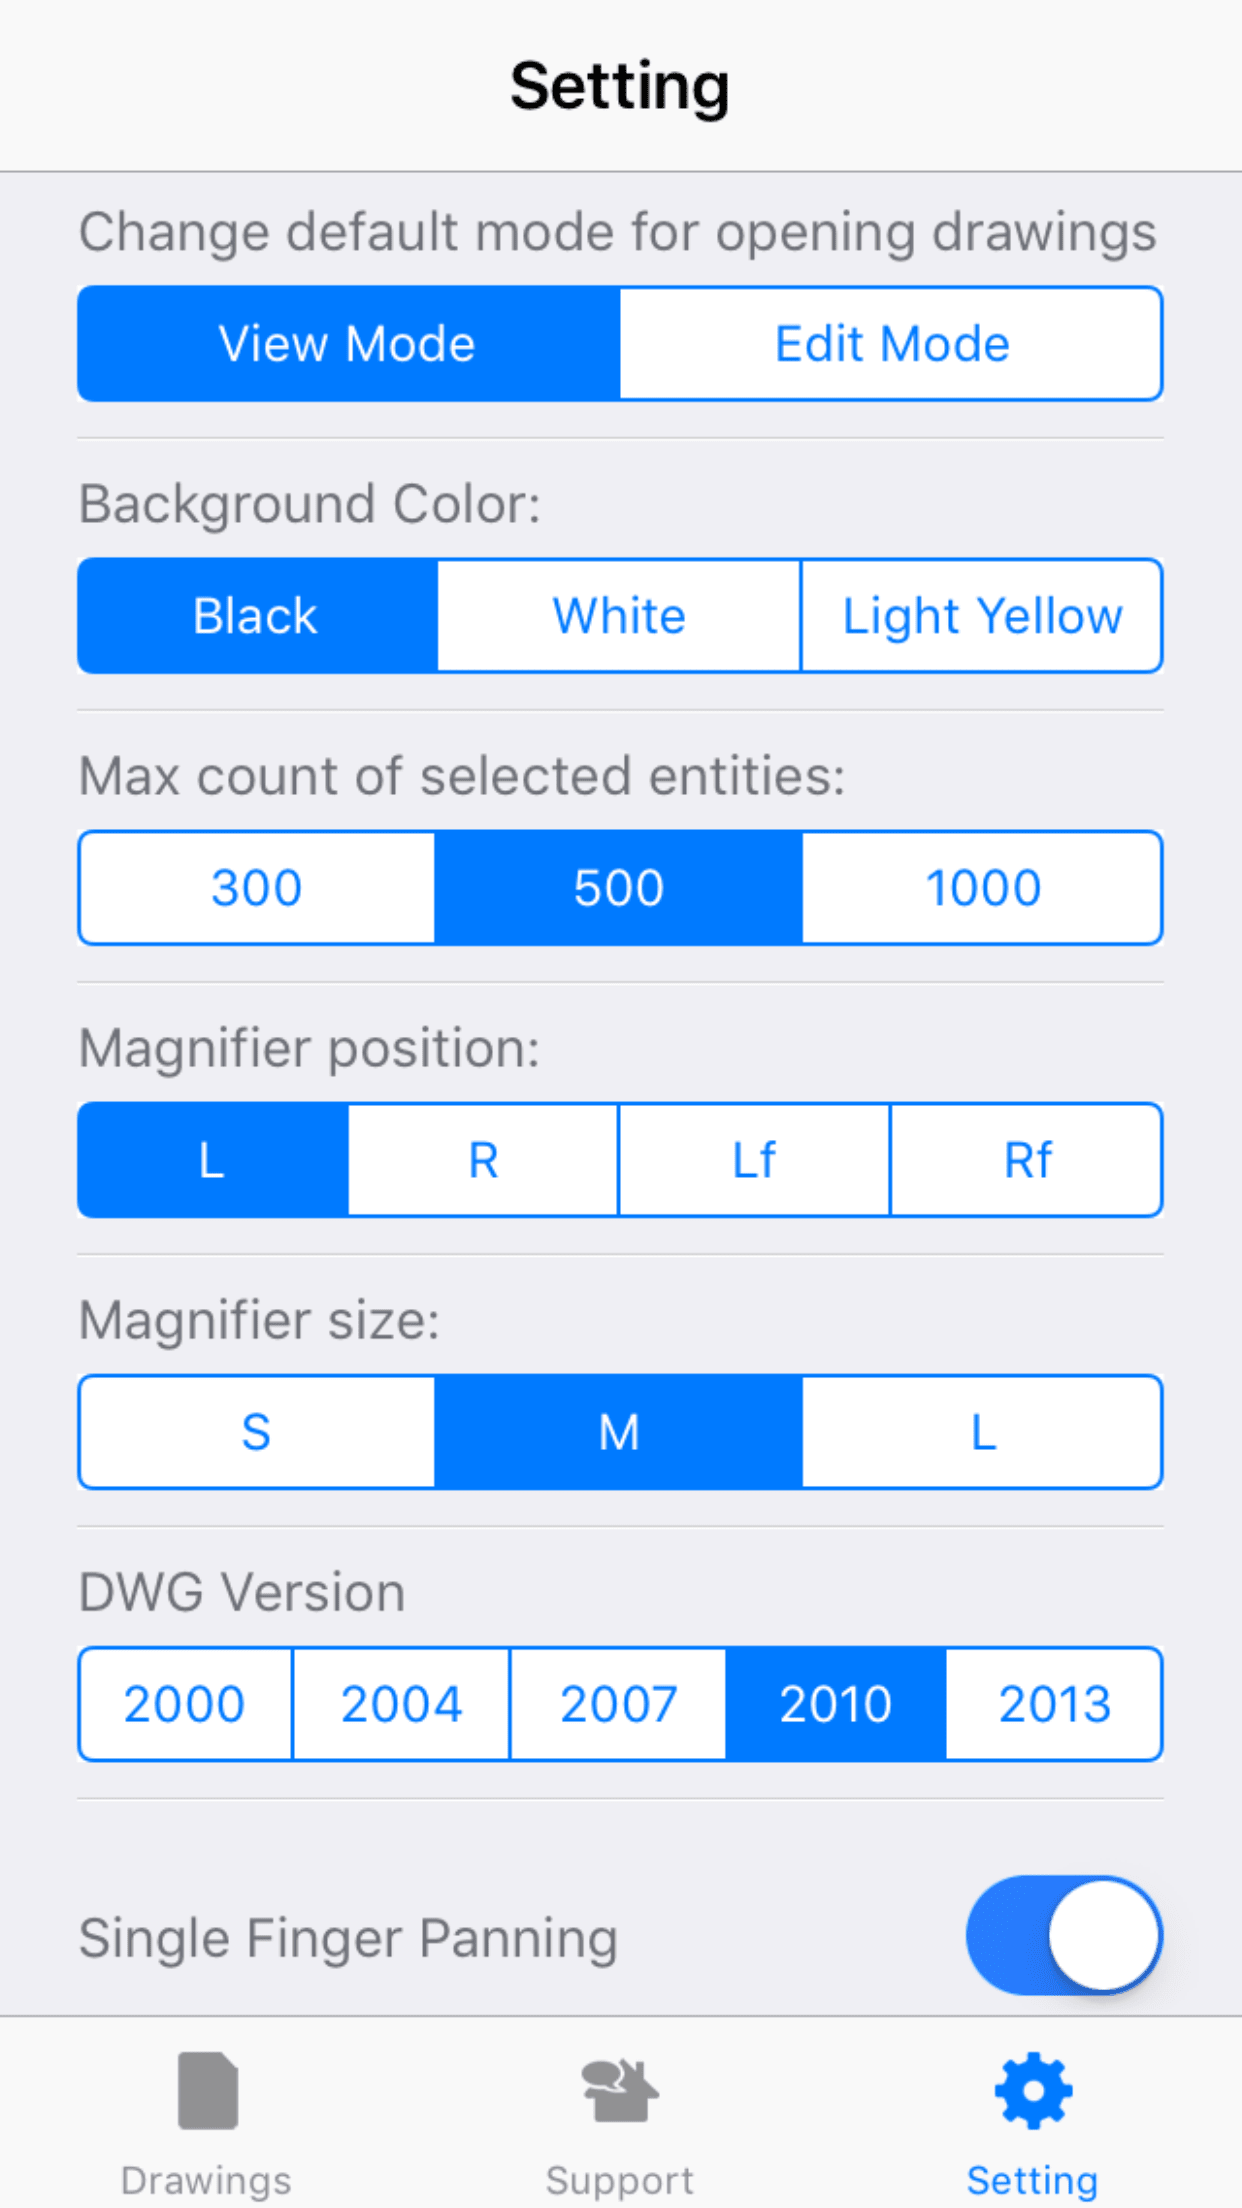 Dwg fastview cad drawing and viewer for iphone download dwg fastview cad drawing and viewer is a free app only available for iphone being part of the category productivity apps with subcategory more productivity malvernweather Choice Image